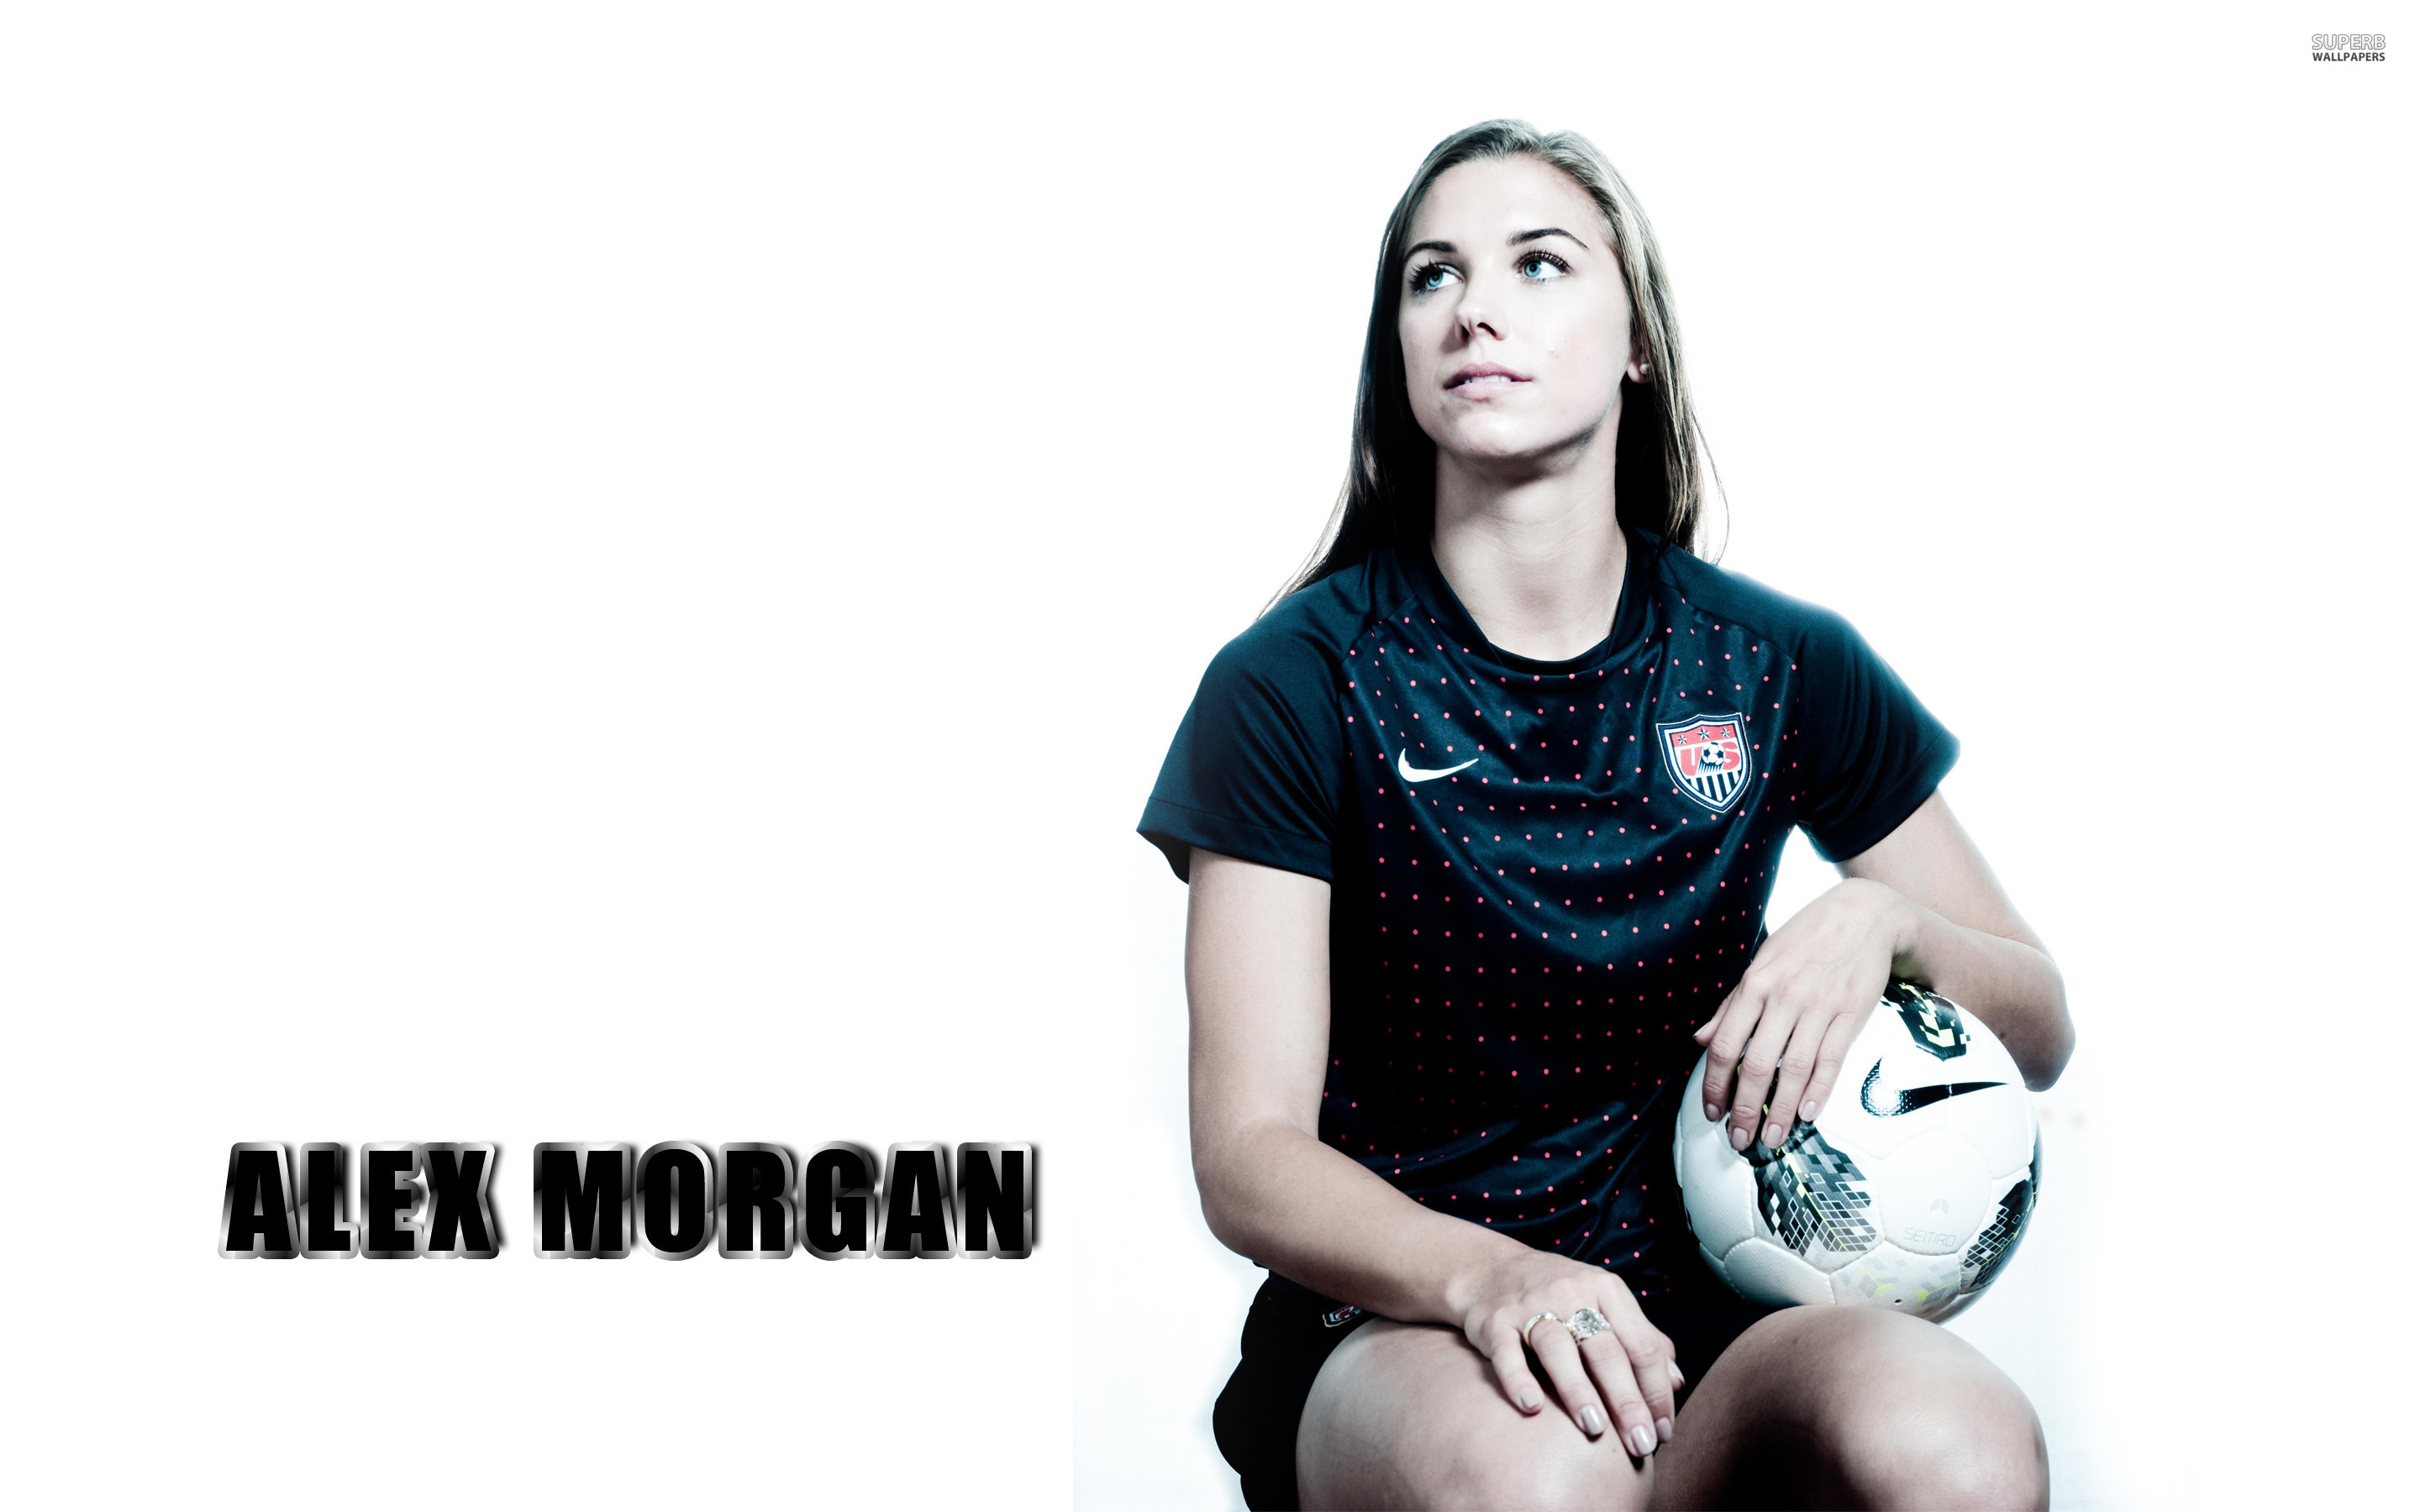 Alex Morgan Wallpapers High Resolution And Quality